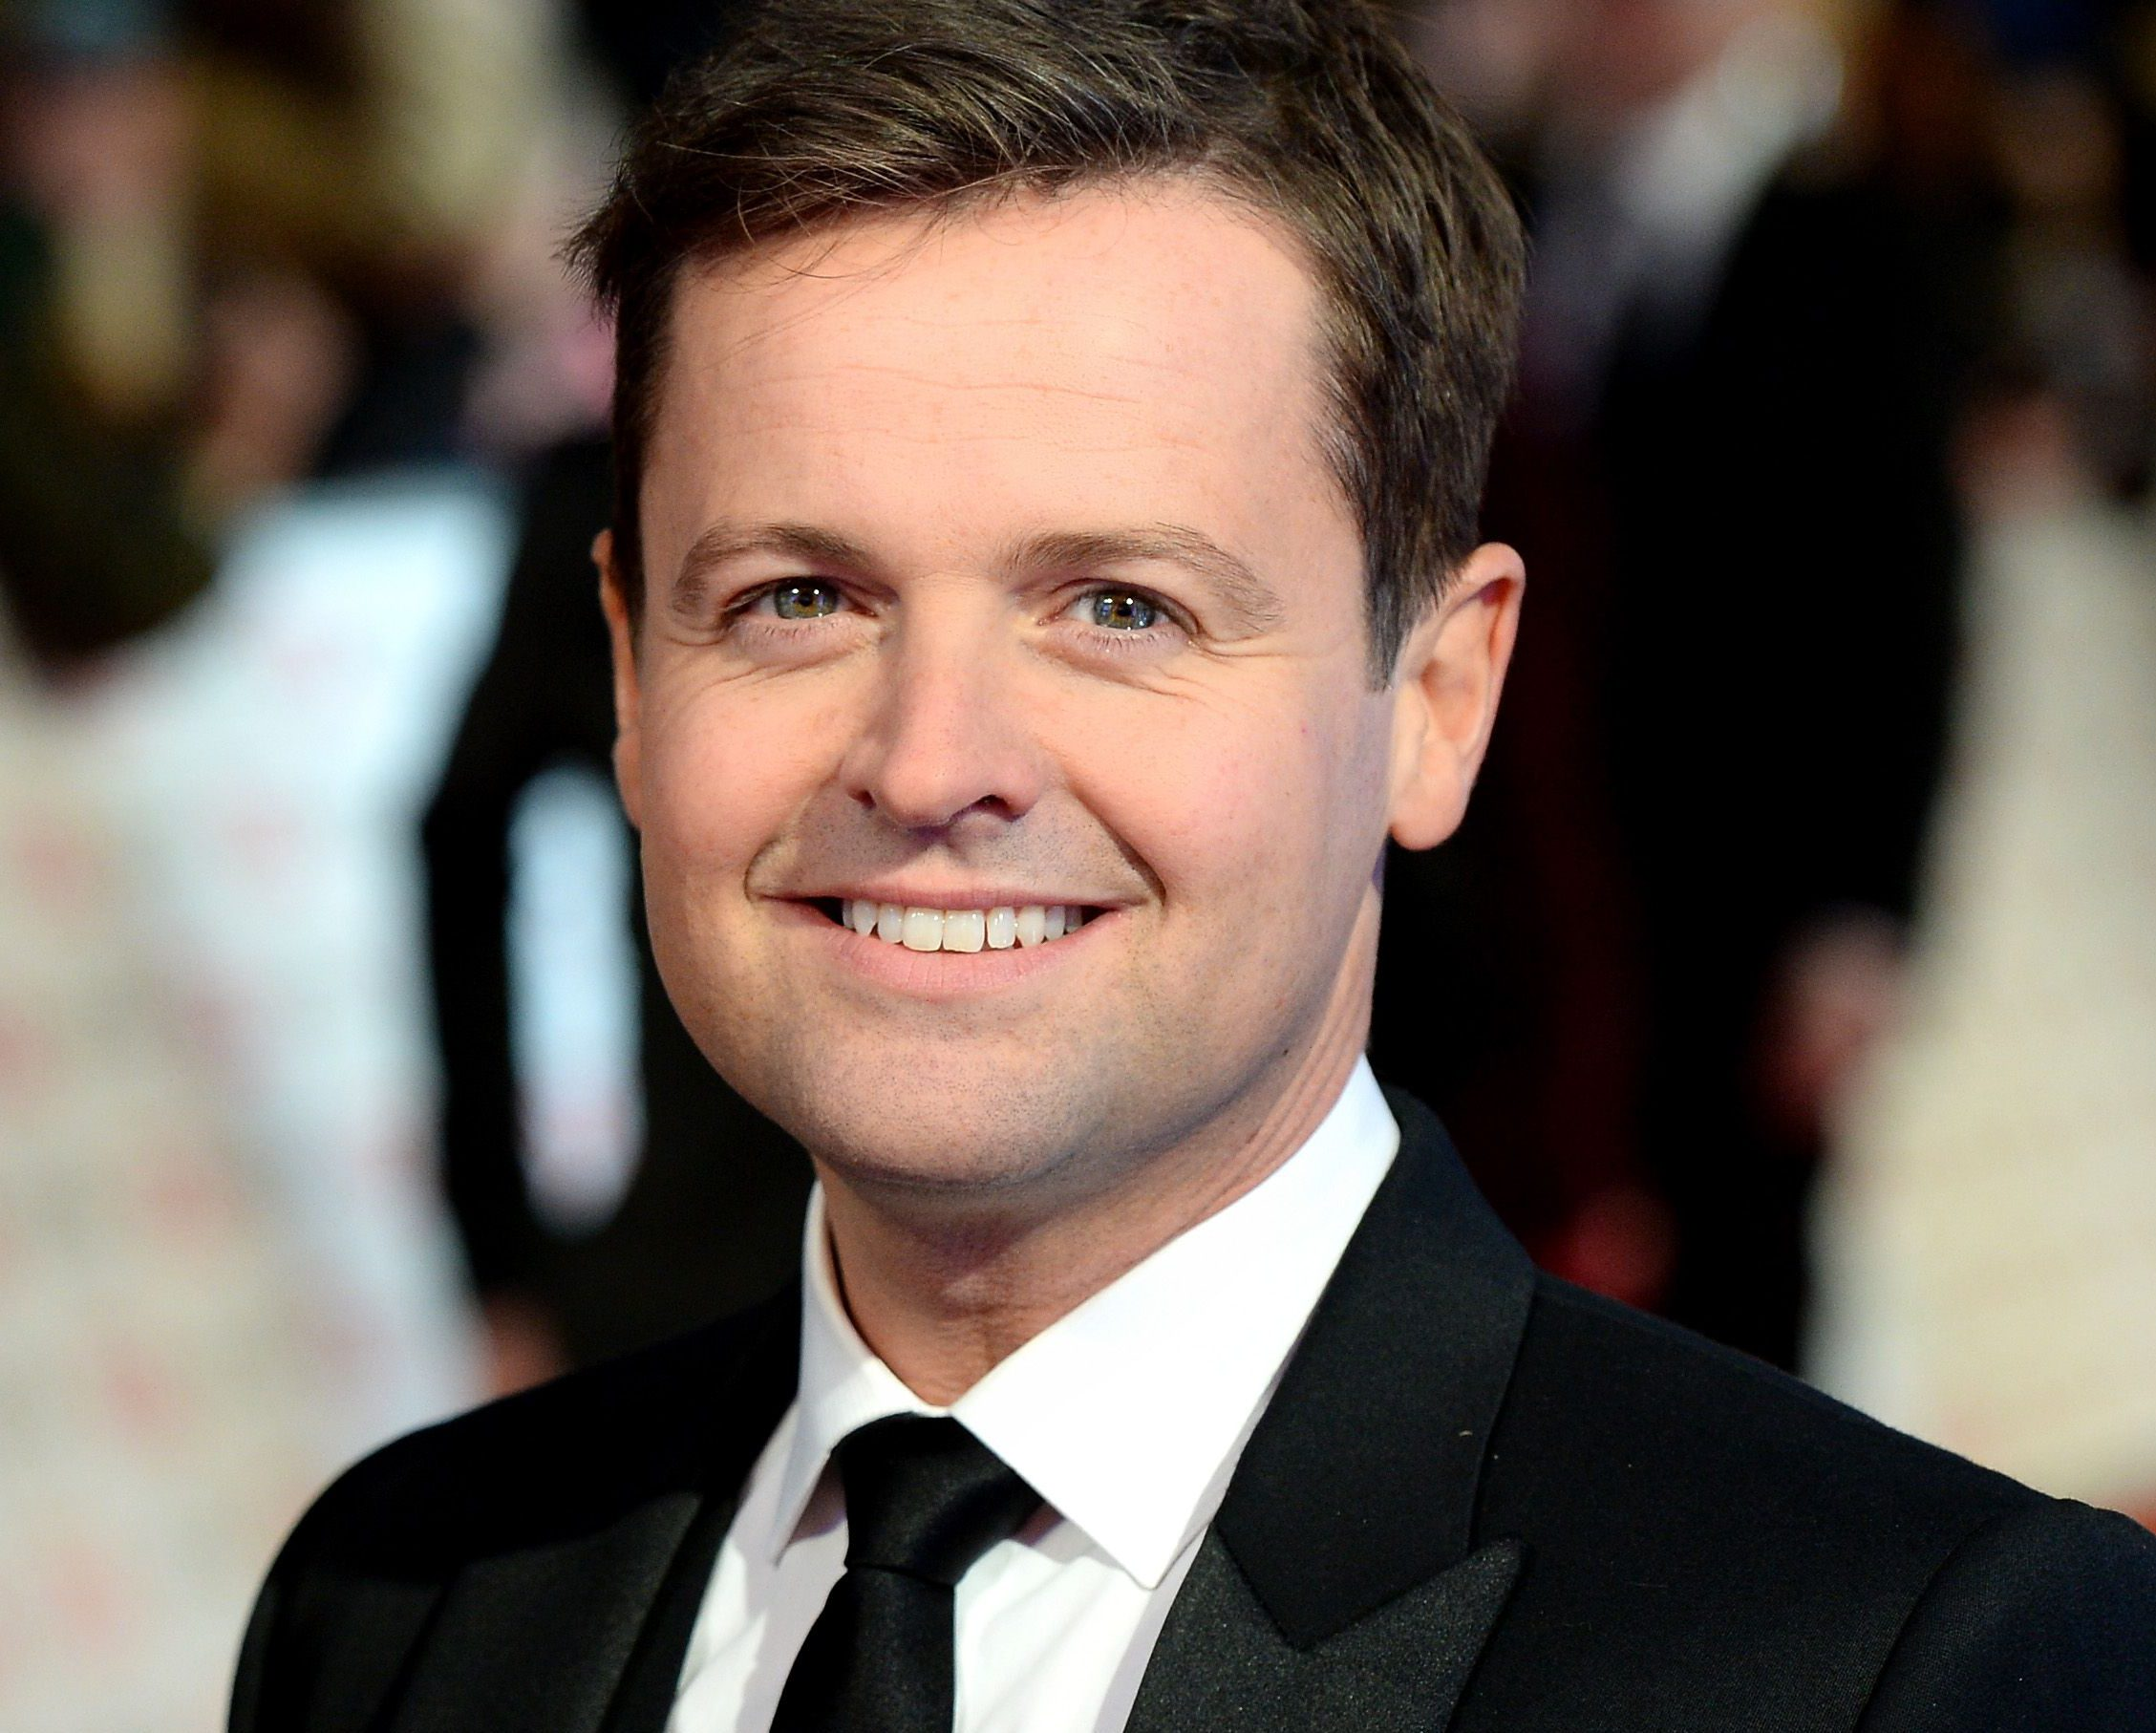 ITV confirms Declan Donnelly will host BGT solo as Ant McPartlin 'temporarily steps down'